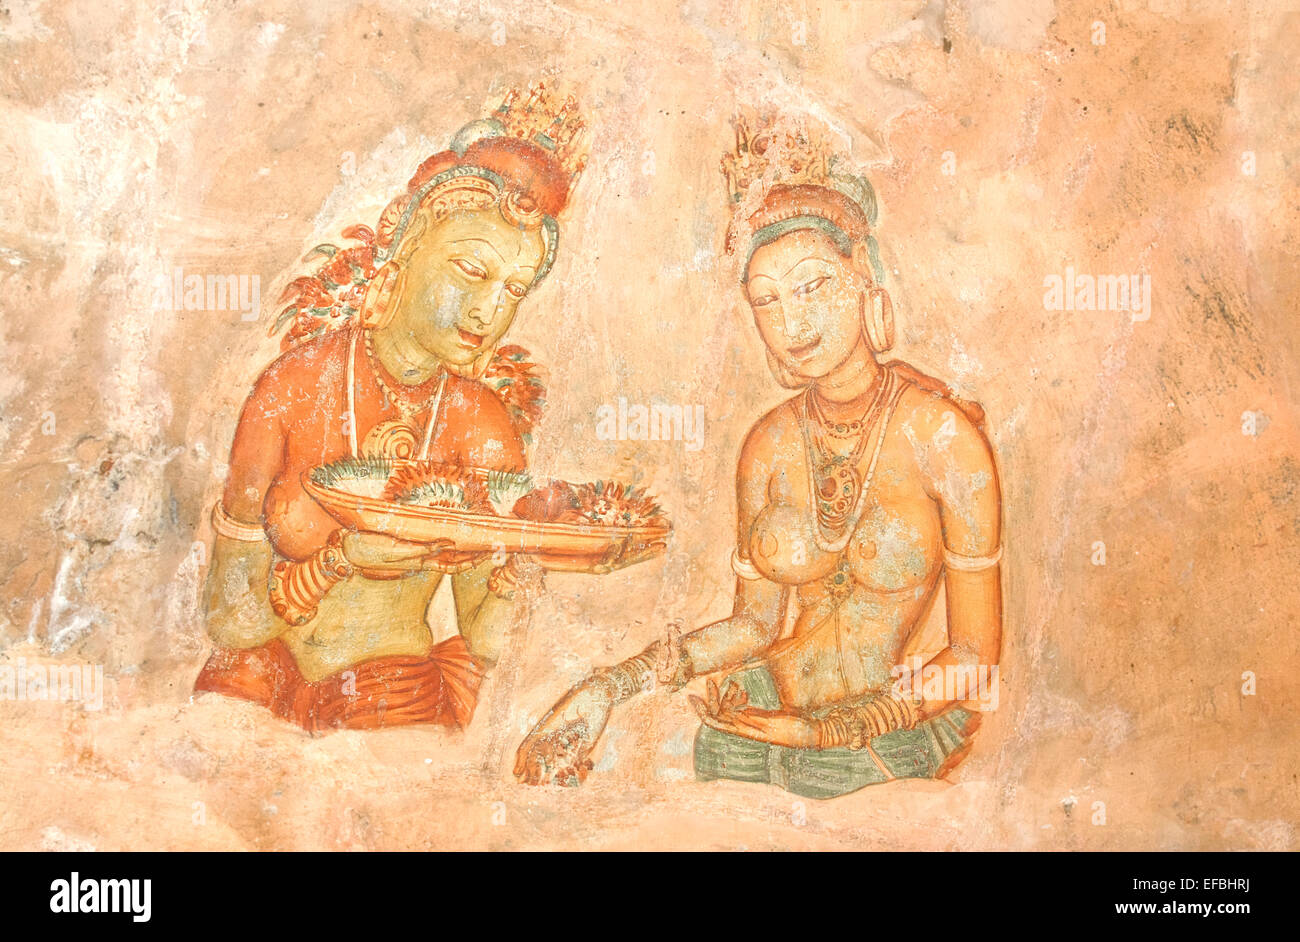 Sigiriya Rock Cave Wall Paintings Stock Photos & Sigiriya Rock Cave ...